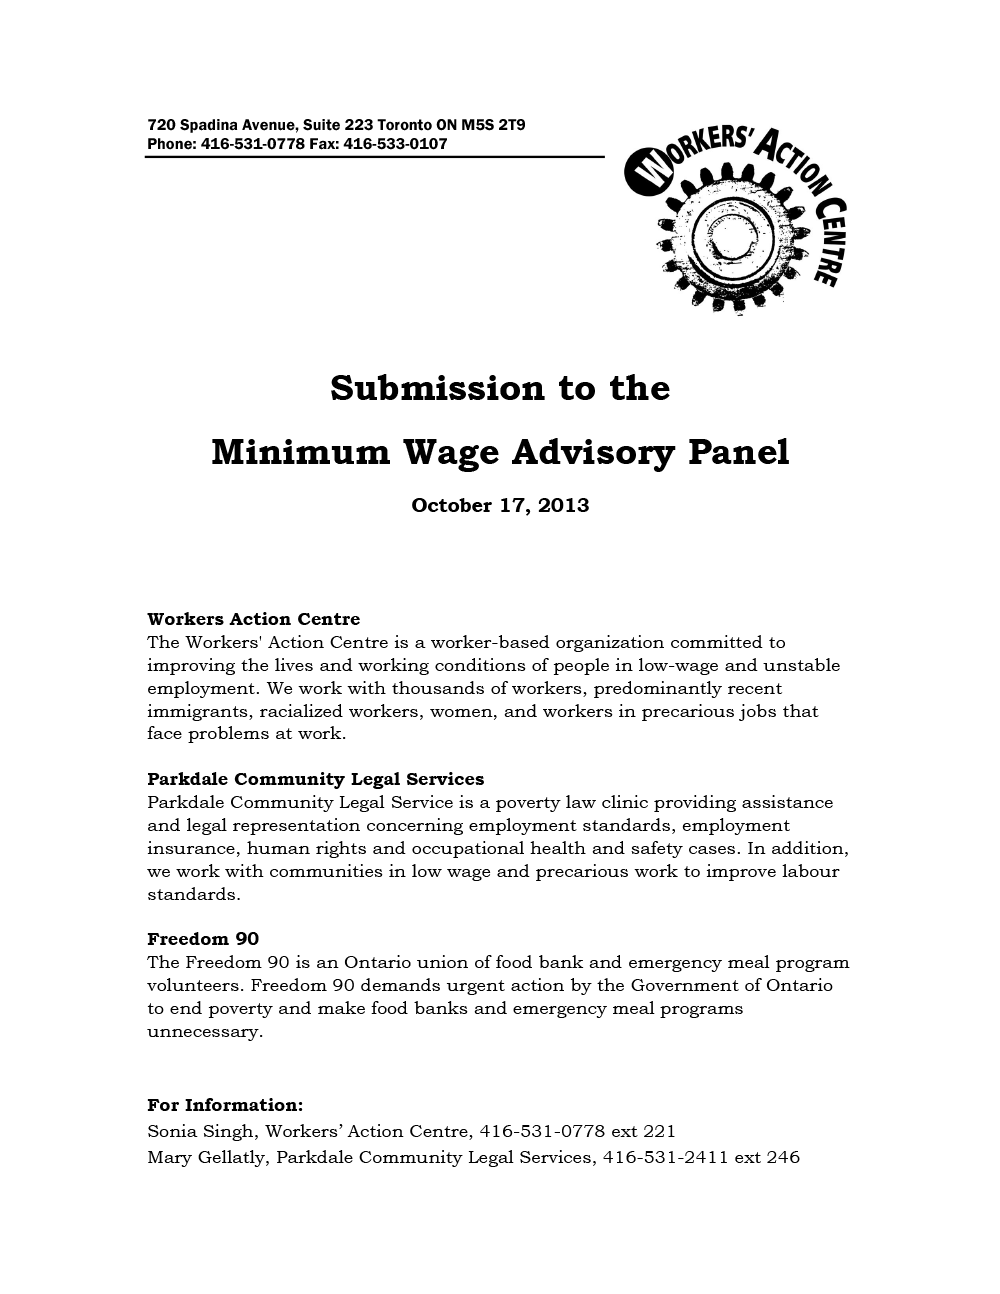 Submission on the Minimum Wage